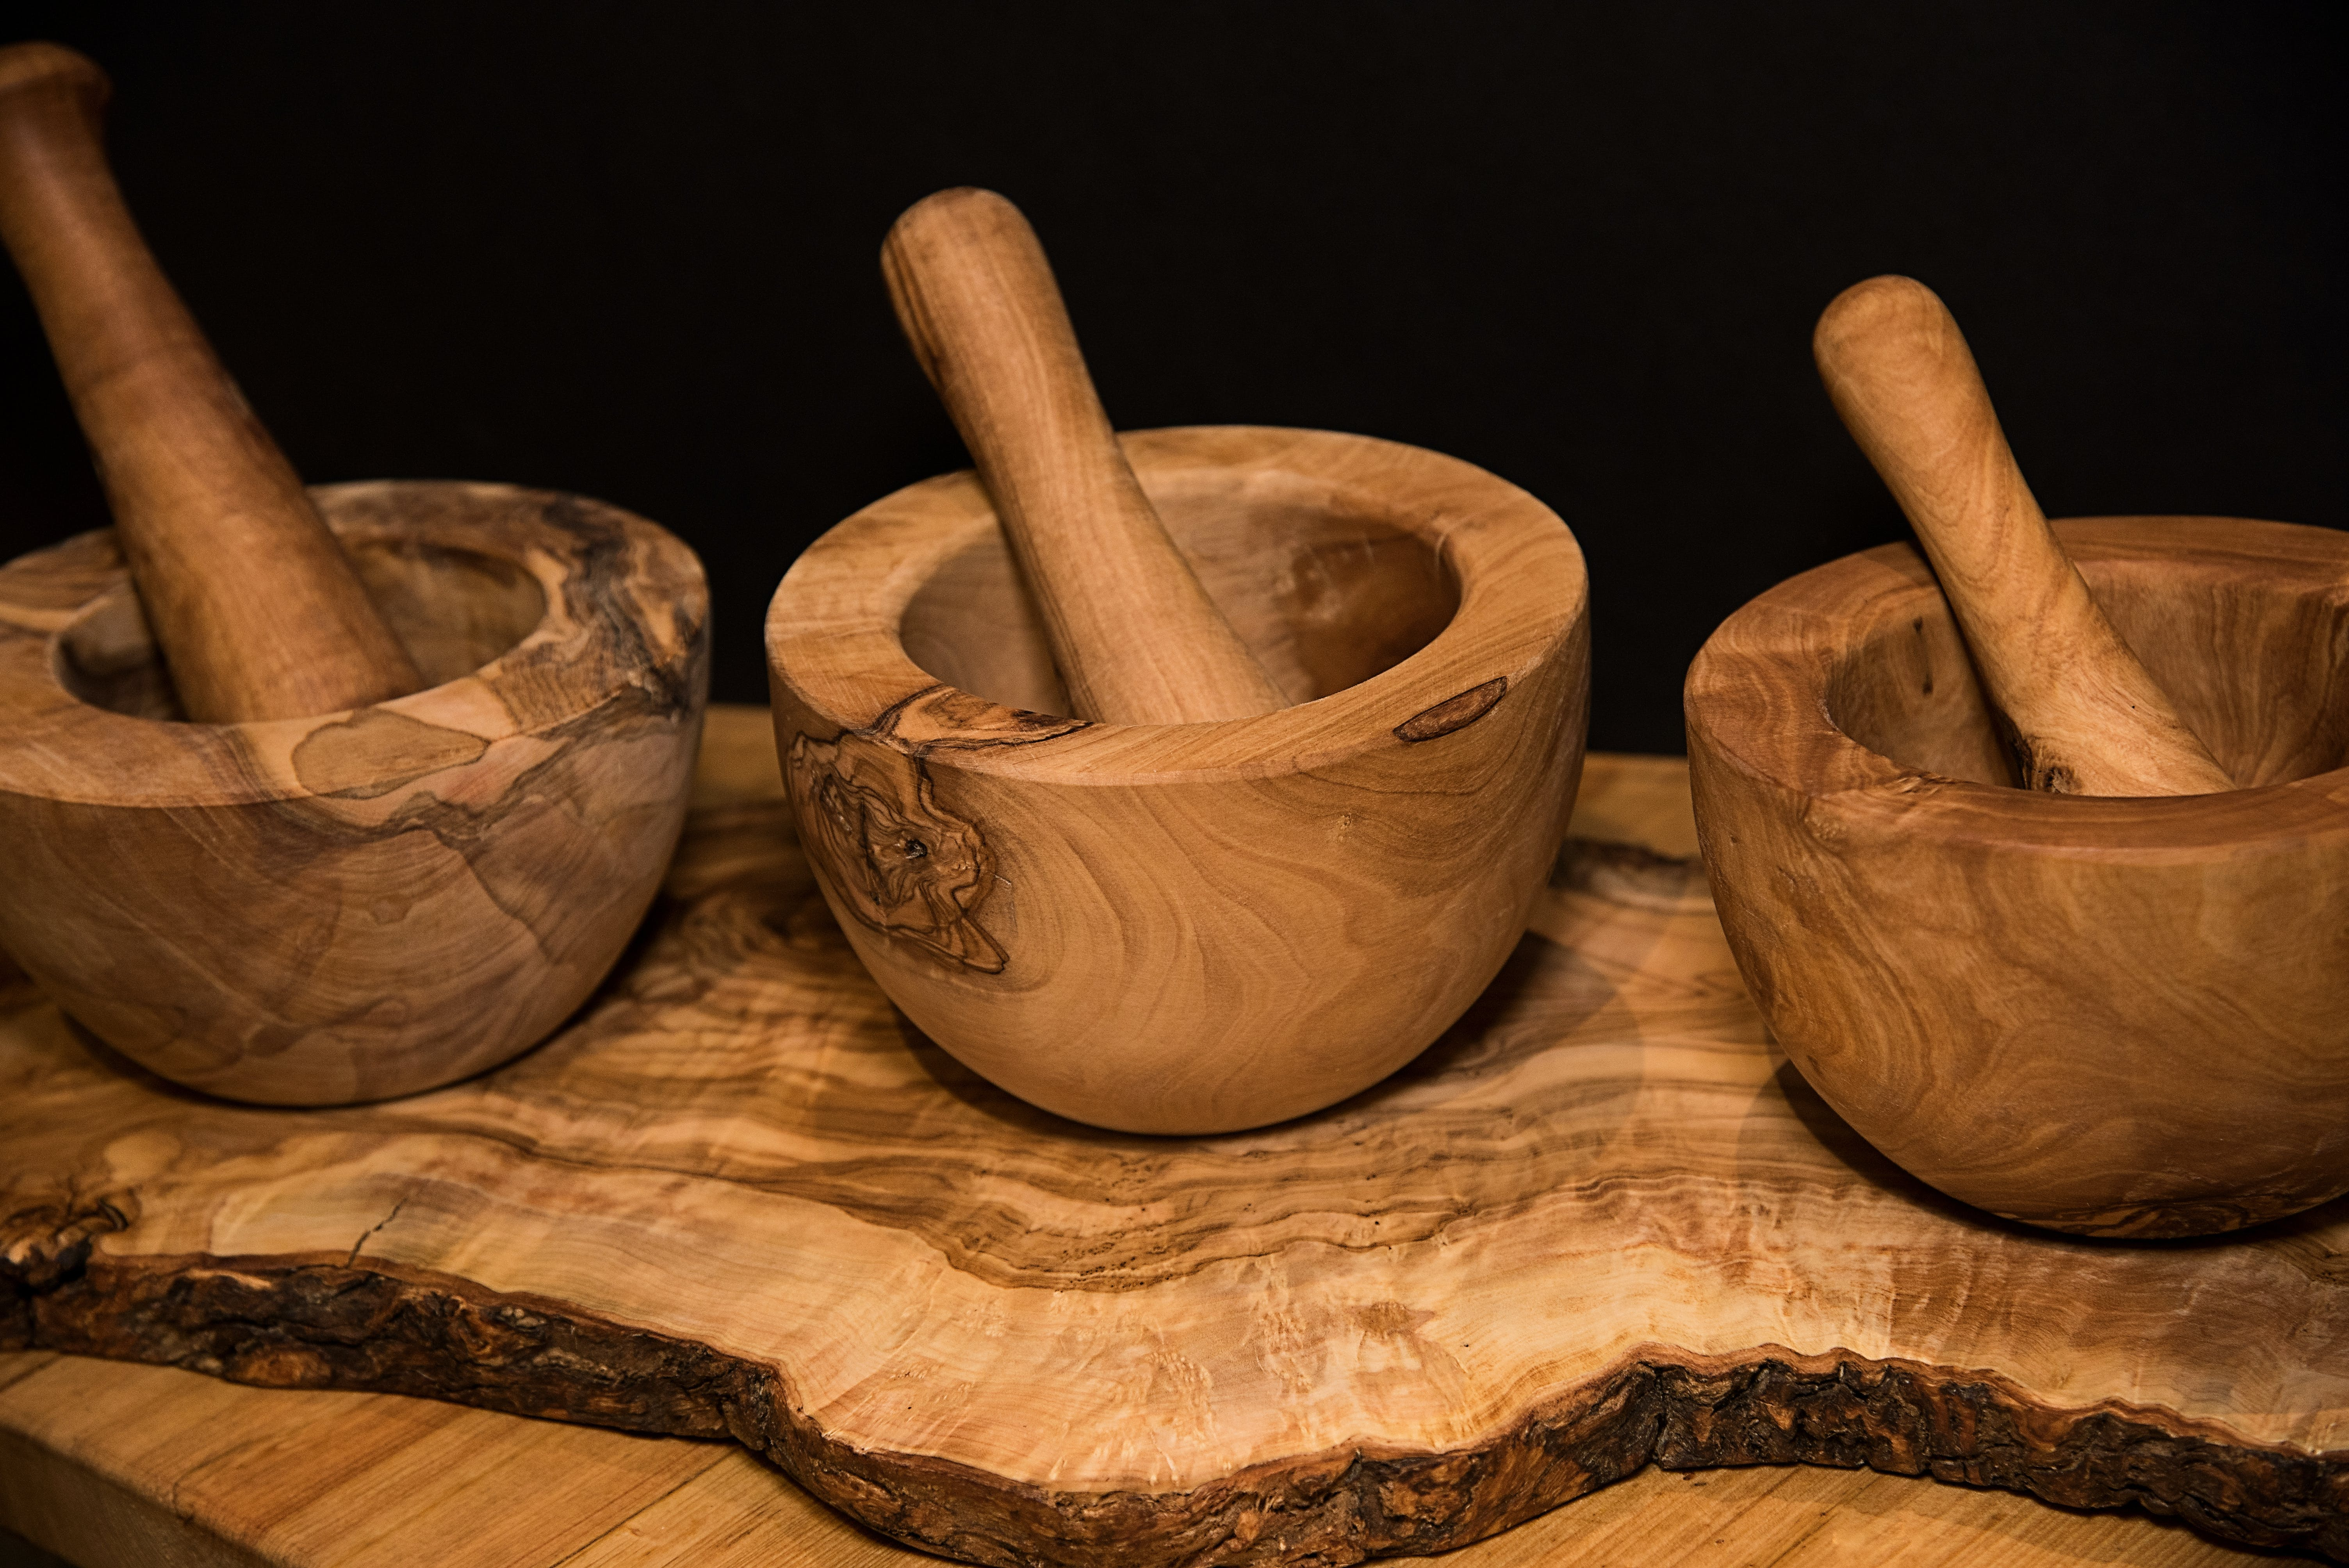 Free stock photo of Fine Dining, handmade, mortar and pestle, olive wood